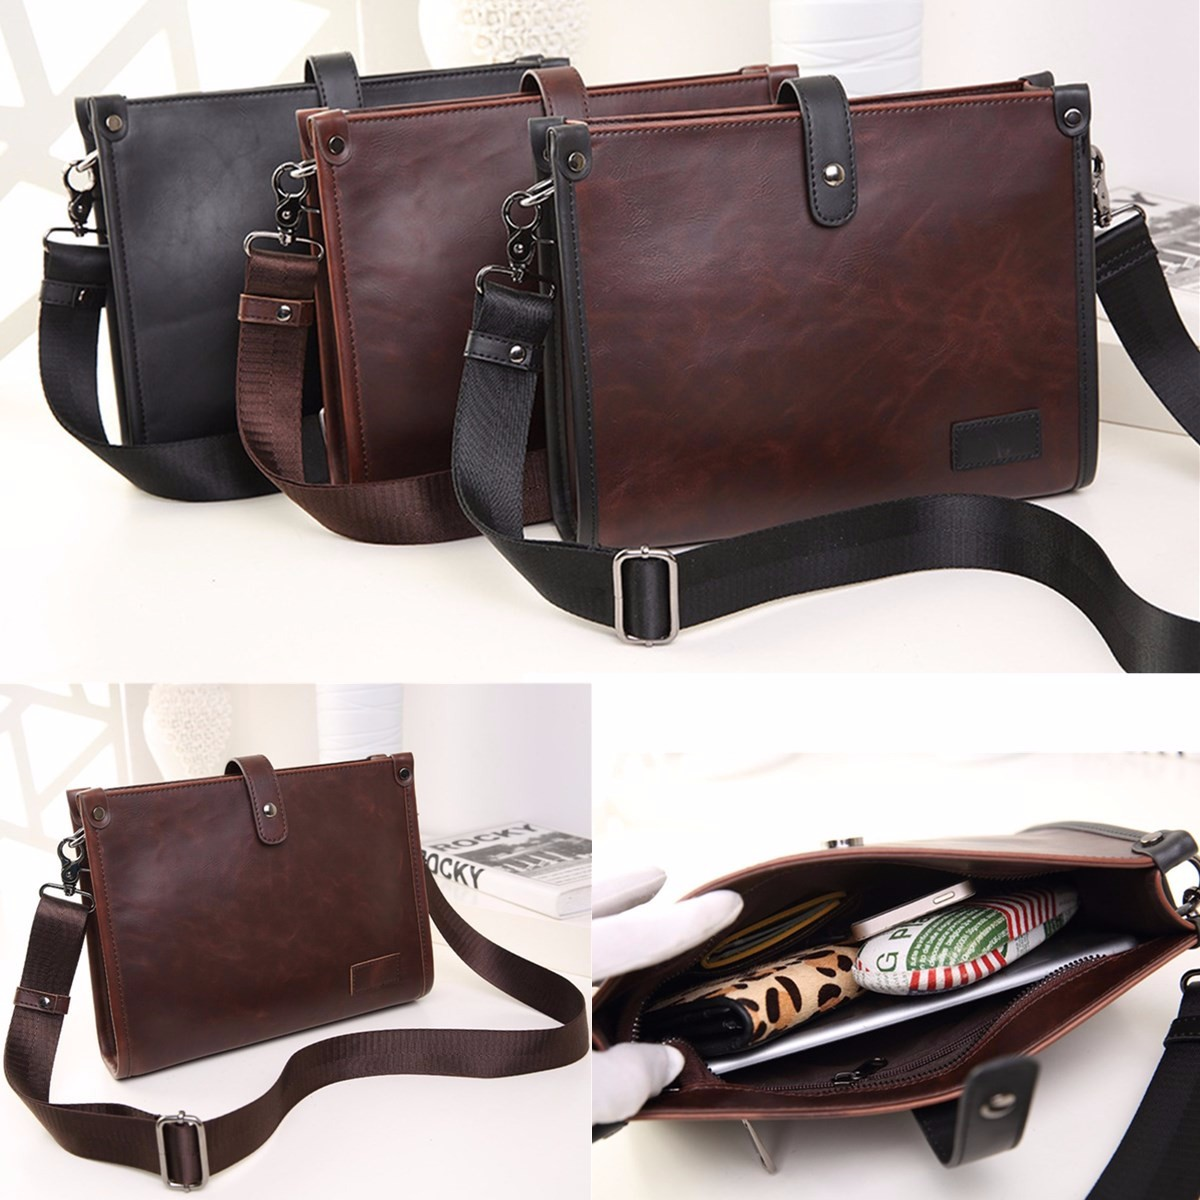 Men's Leather Business Briefcase Handbag Messenger Shoulder Crossbody Bag Satchel Messenger Bag Business Bags Male New